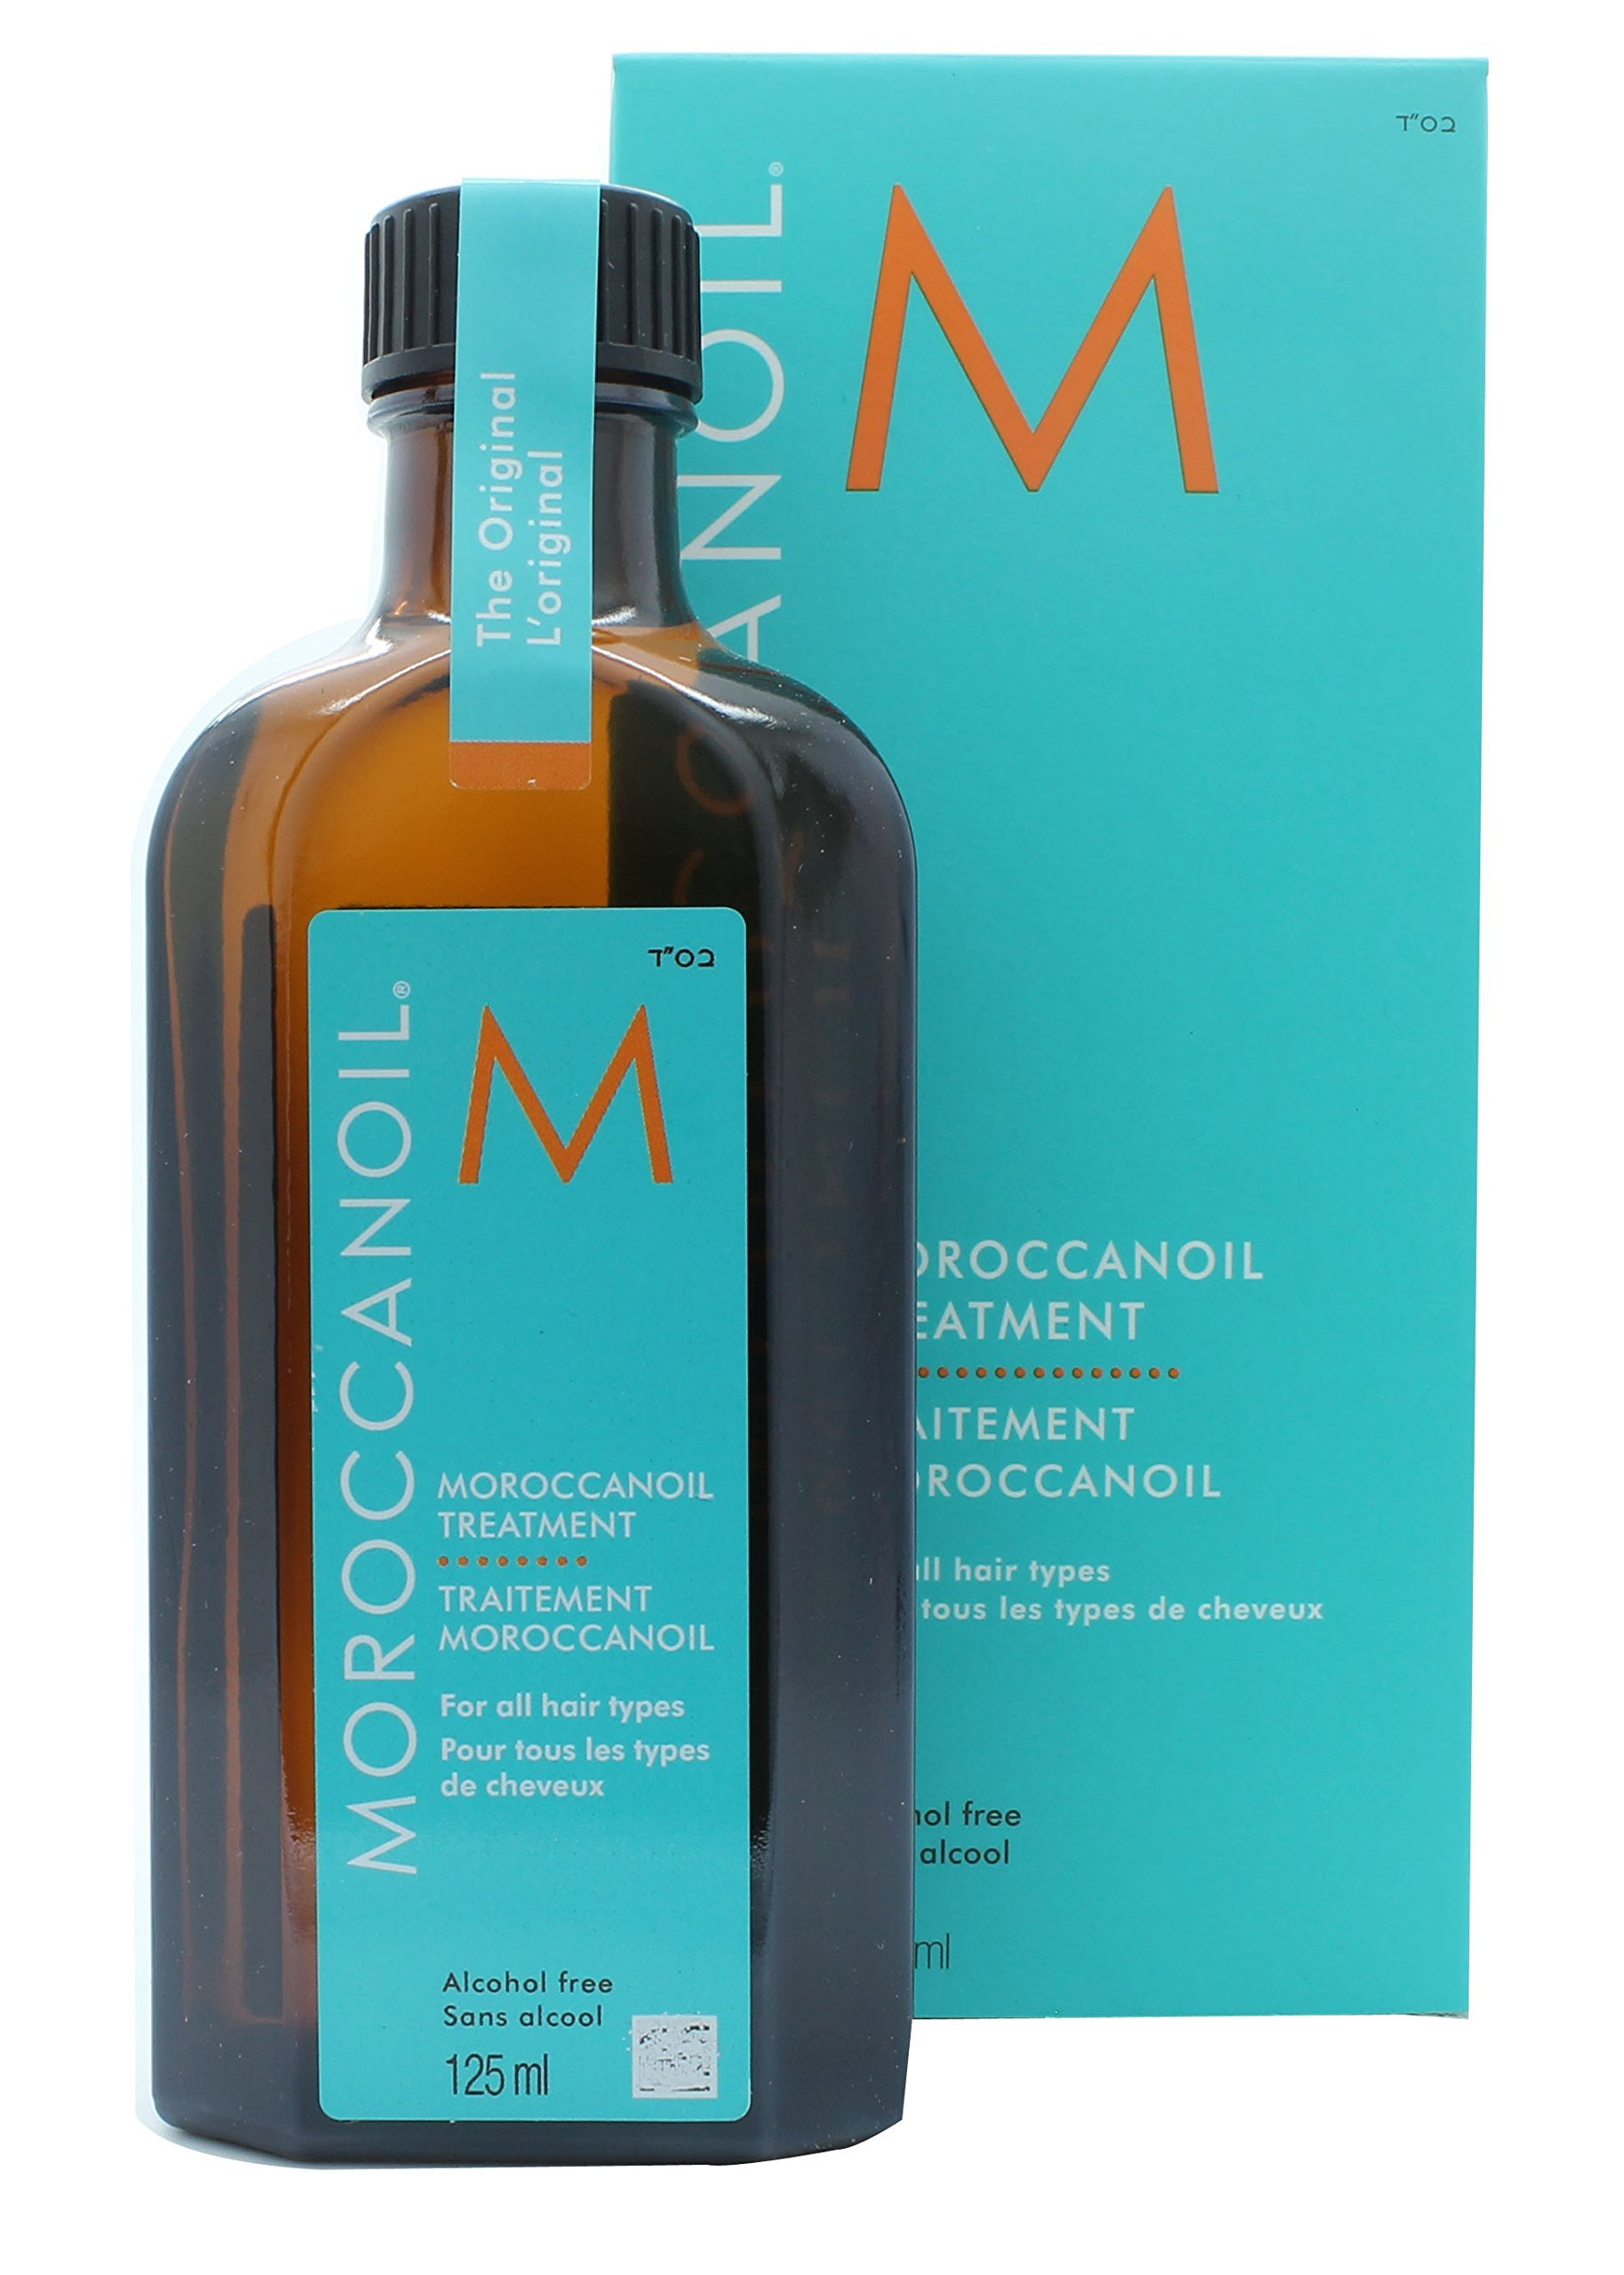 MoroccanOil - Oil Treatment For All Hair Types (125ml) product image